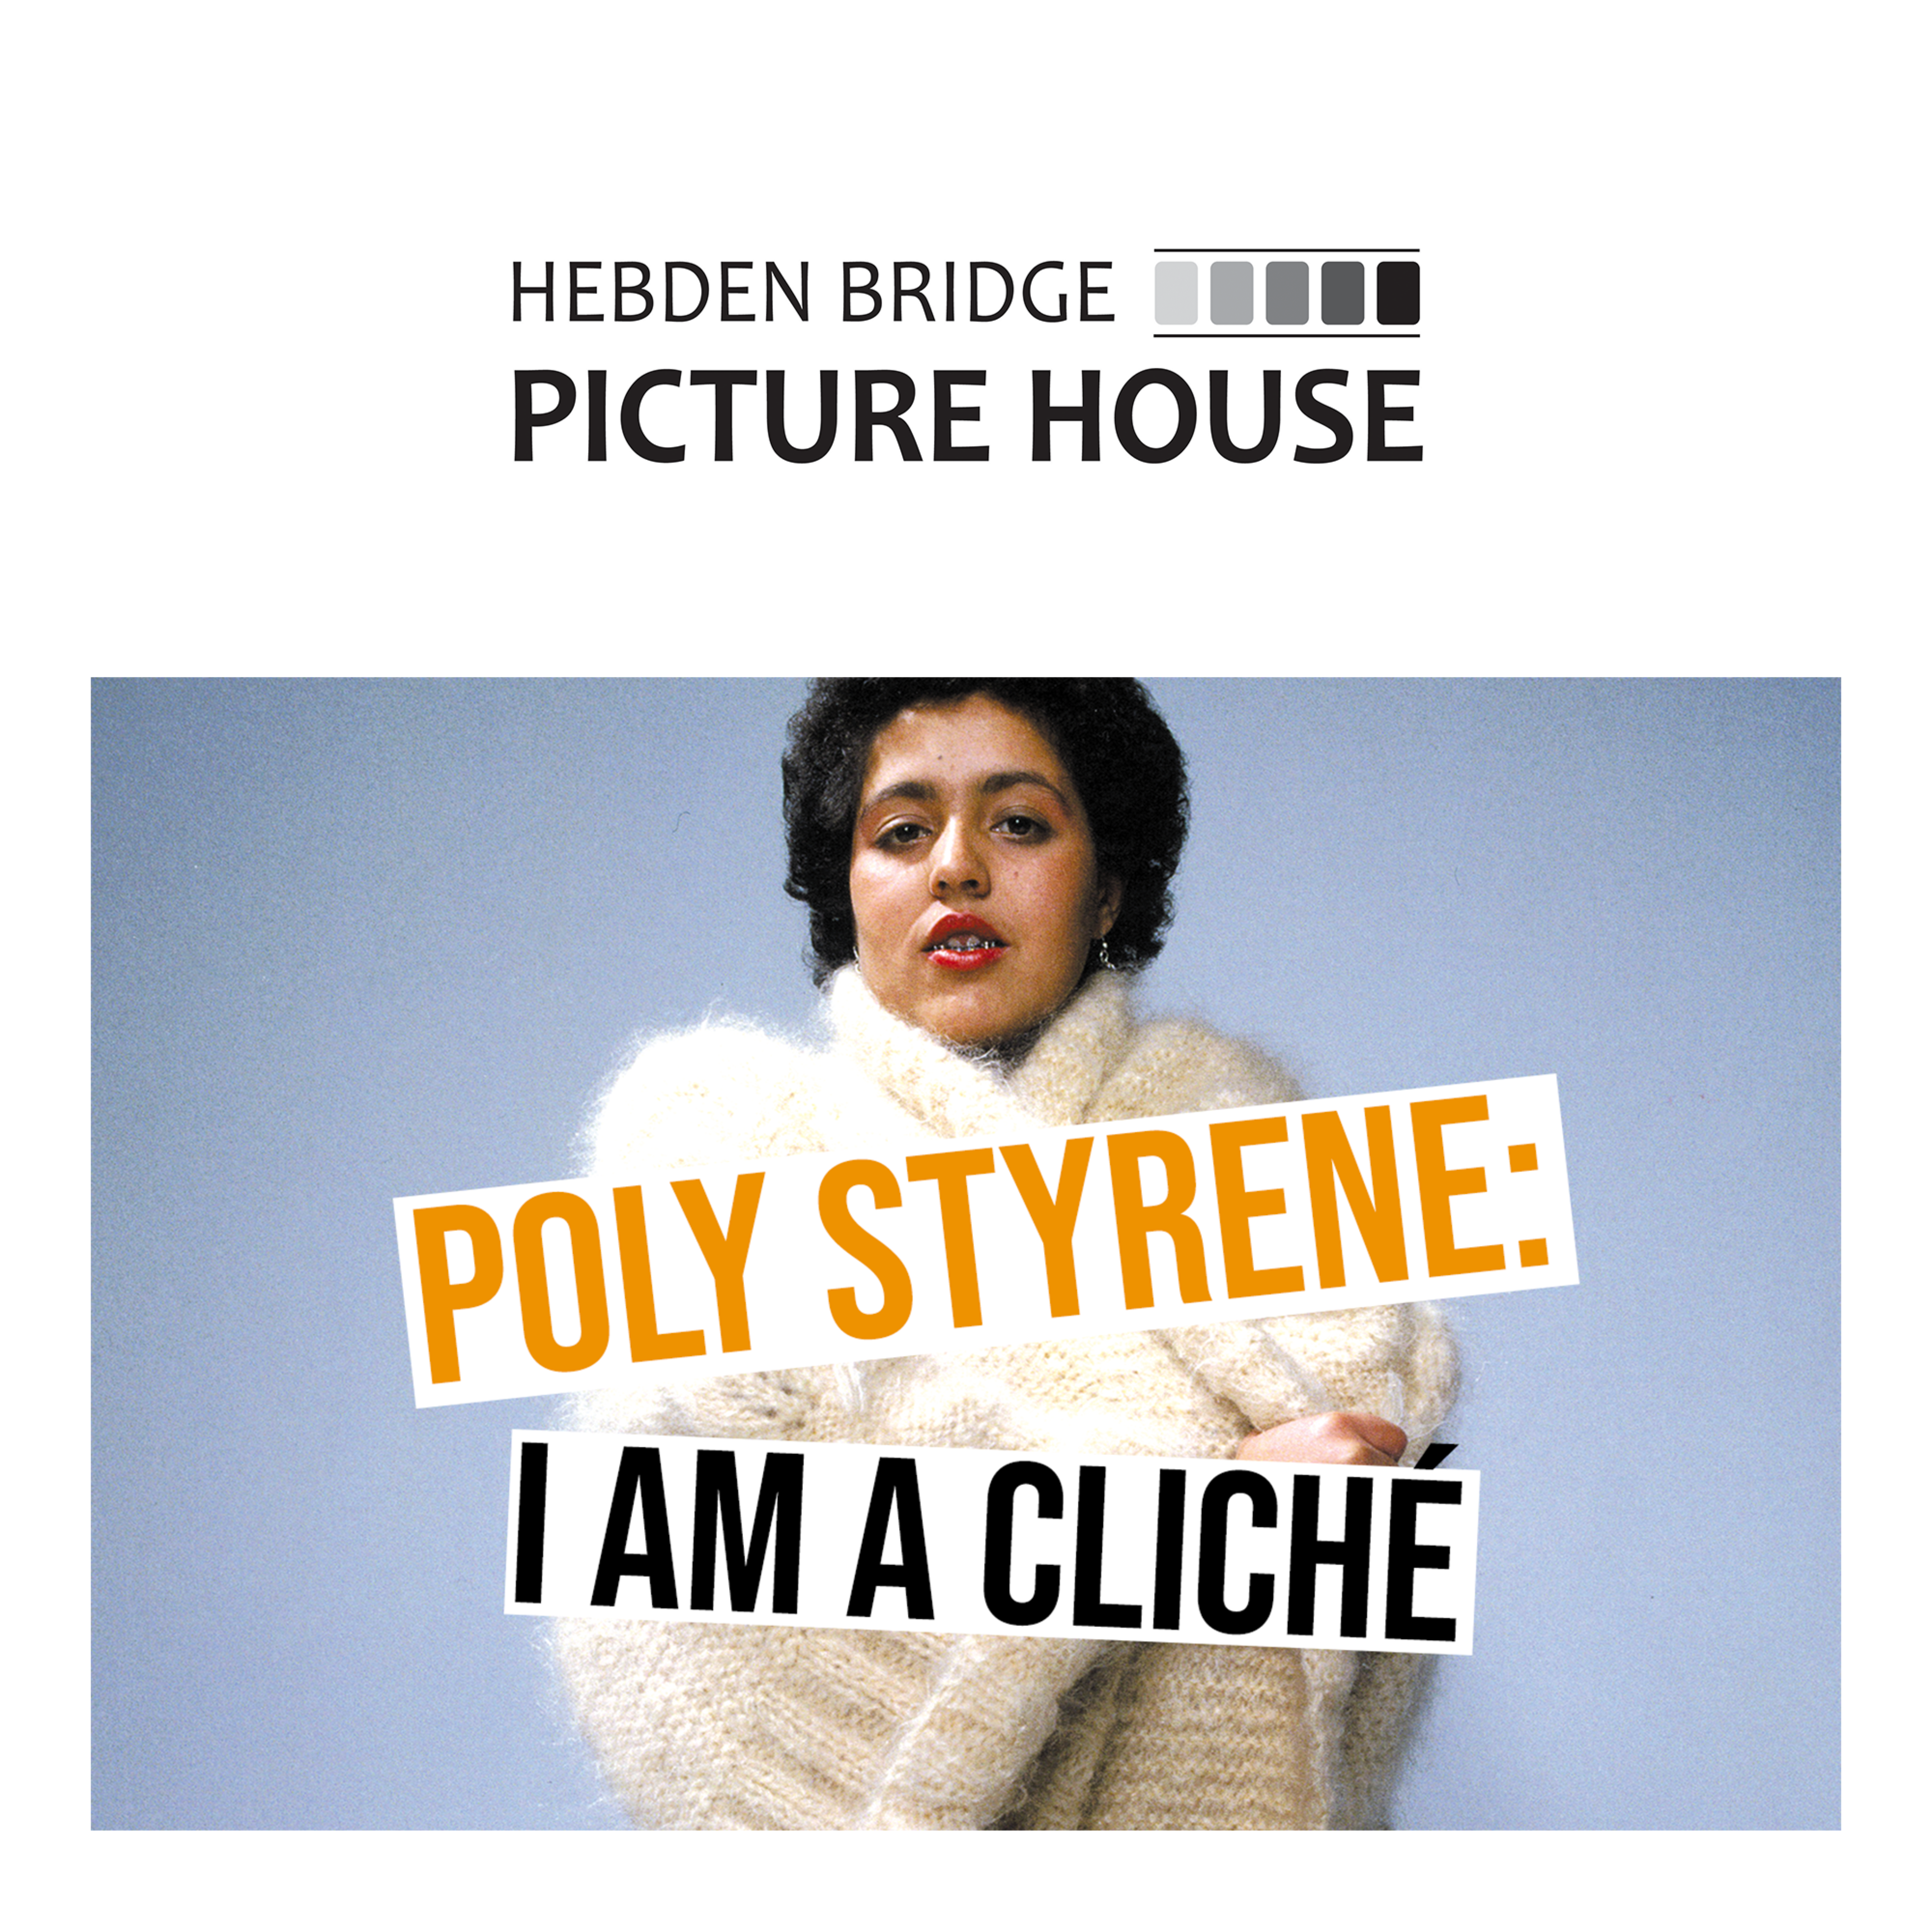 Poly Styrene: I Am a Cliché at Hebden Bridge Picture House